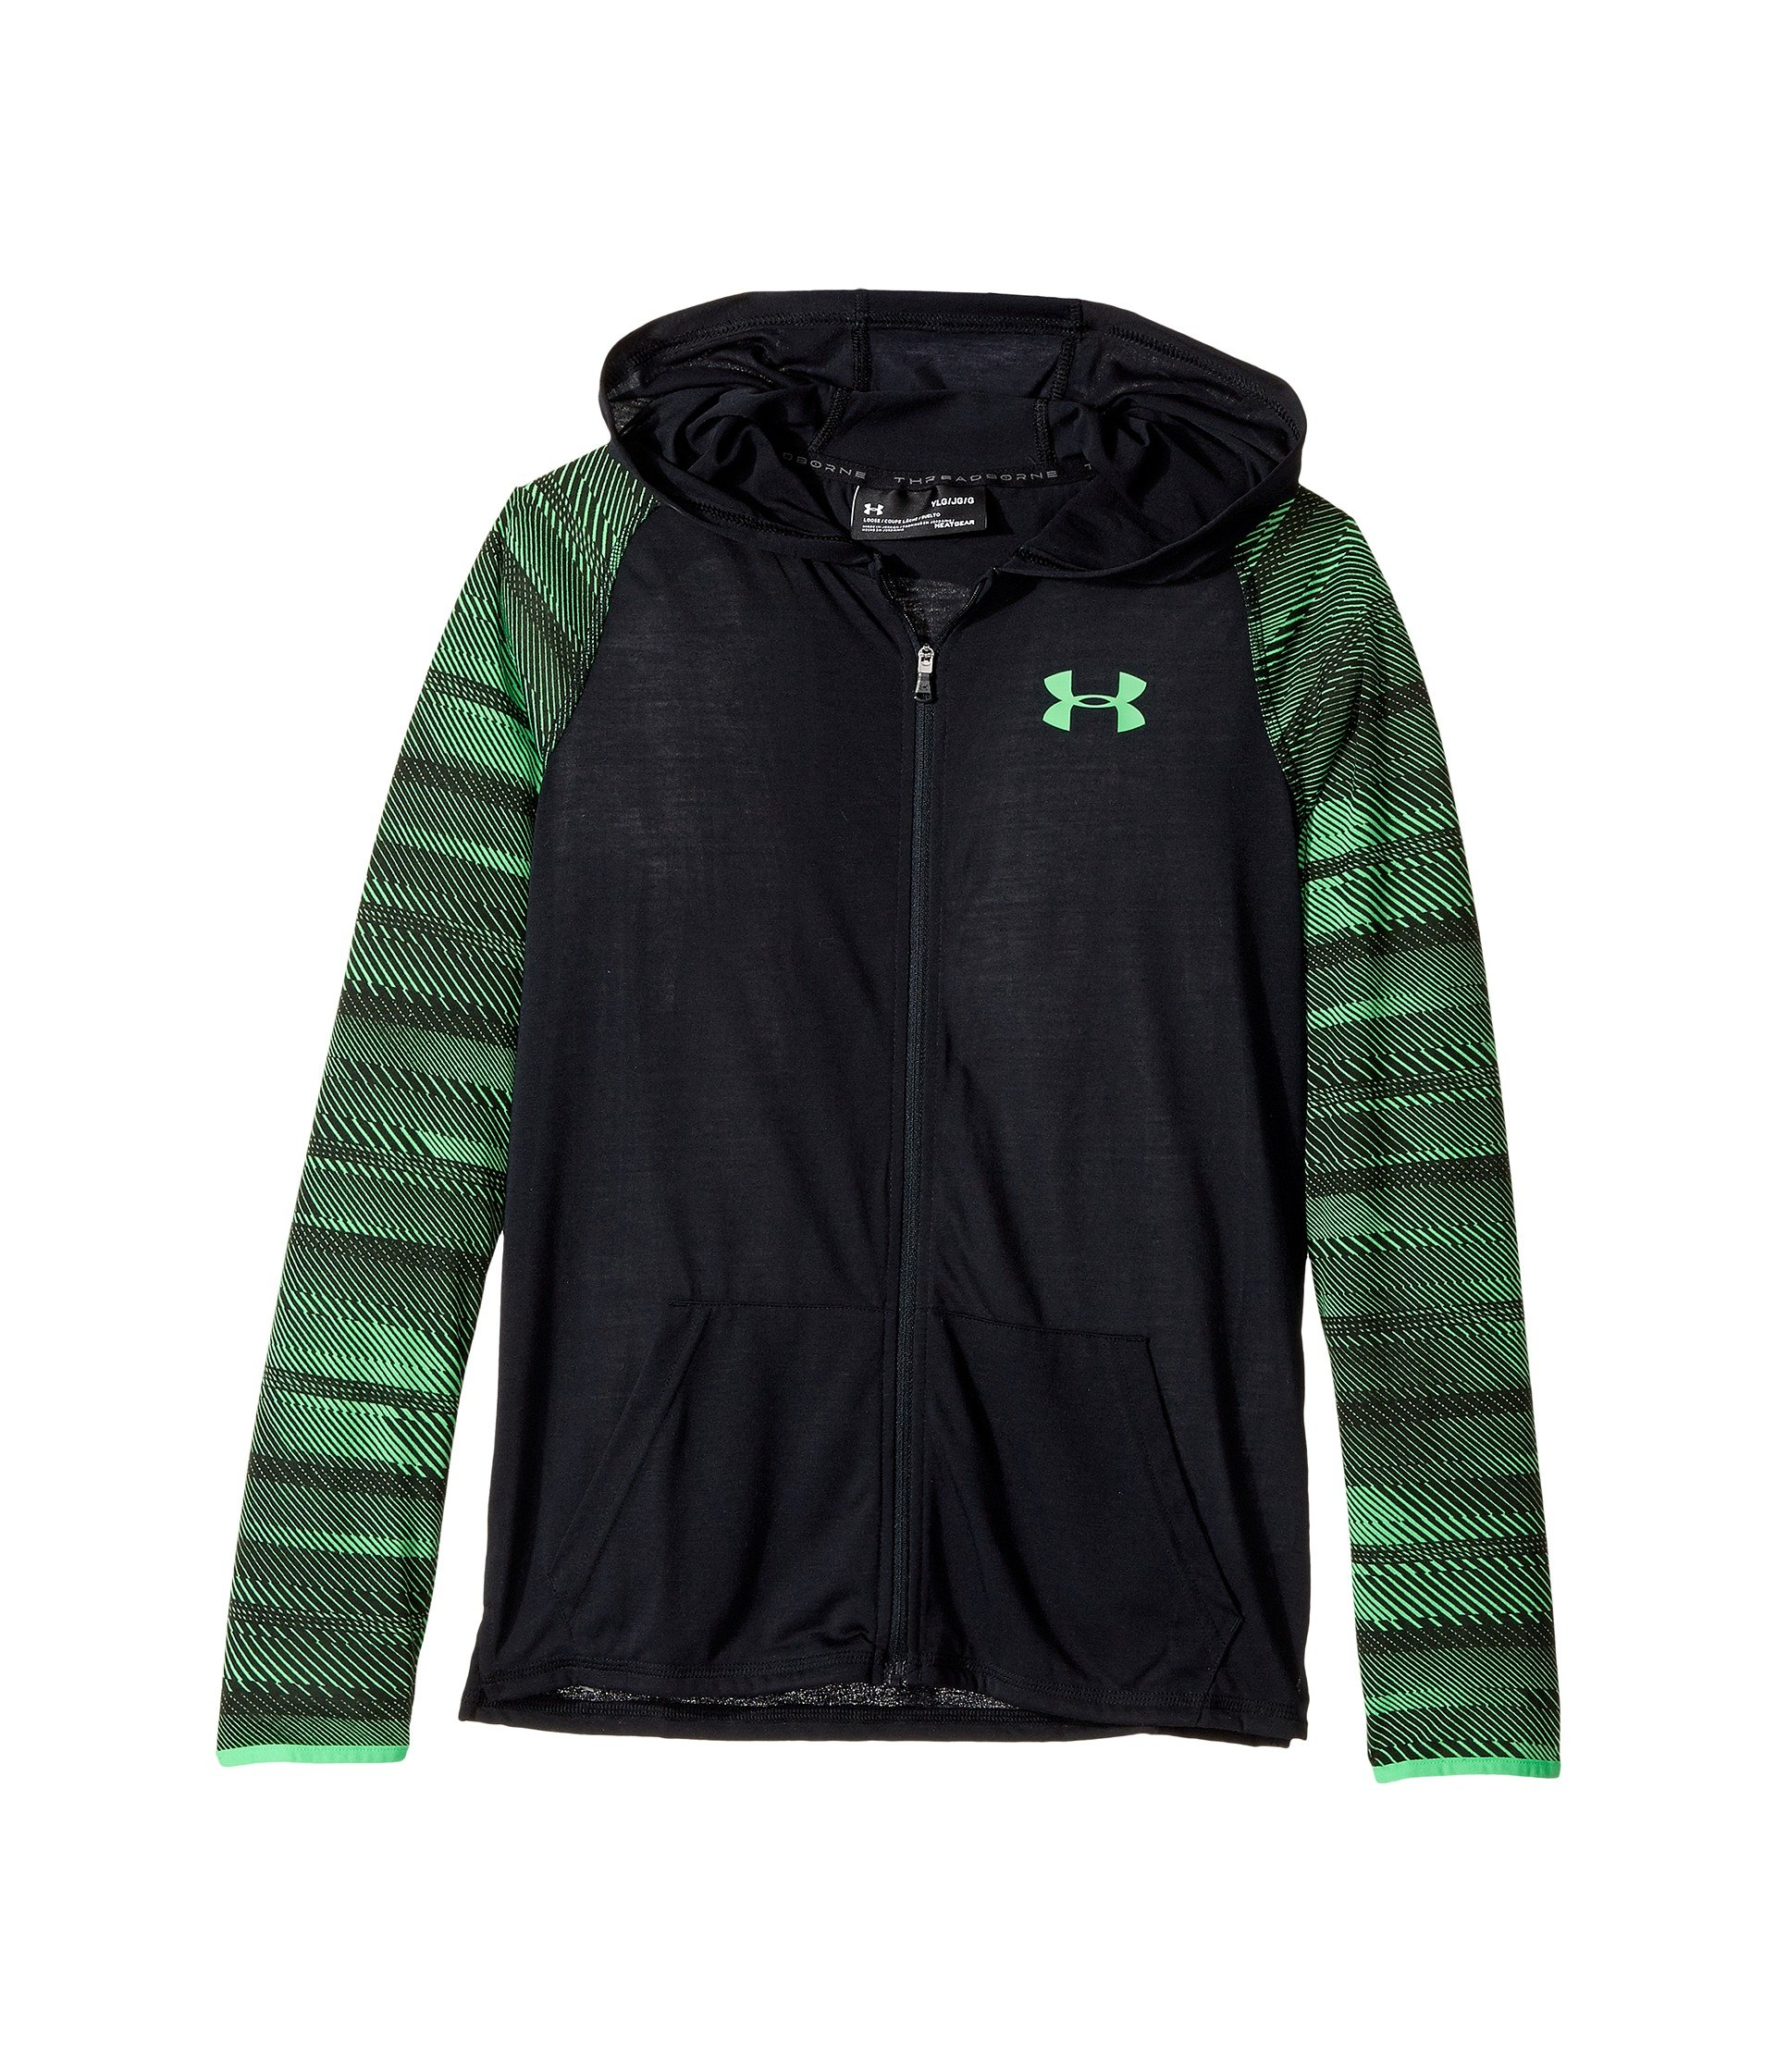 Under Armour Kids Boy's Threadborne Full Zip Hoodie (Big Kids) Black/Lime Twist/Lime Twist Sweatshirt